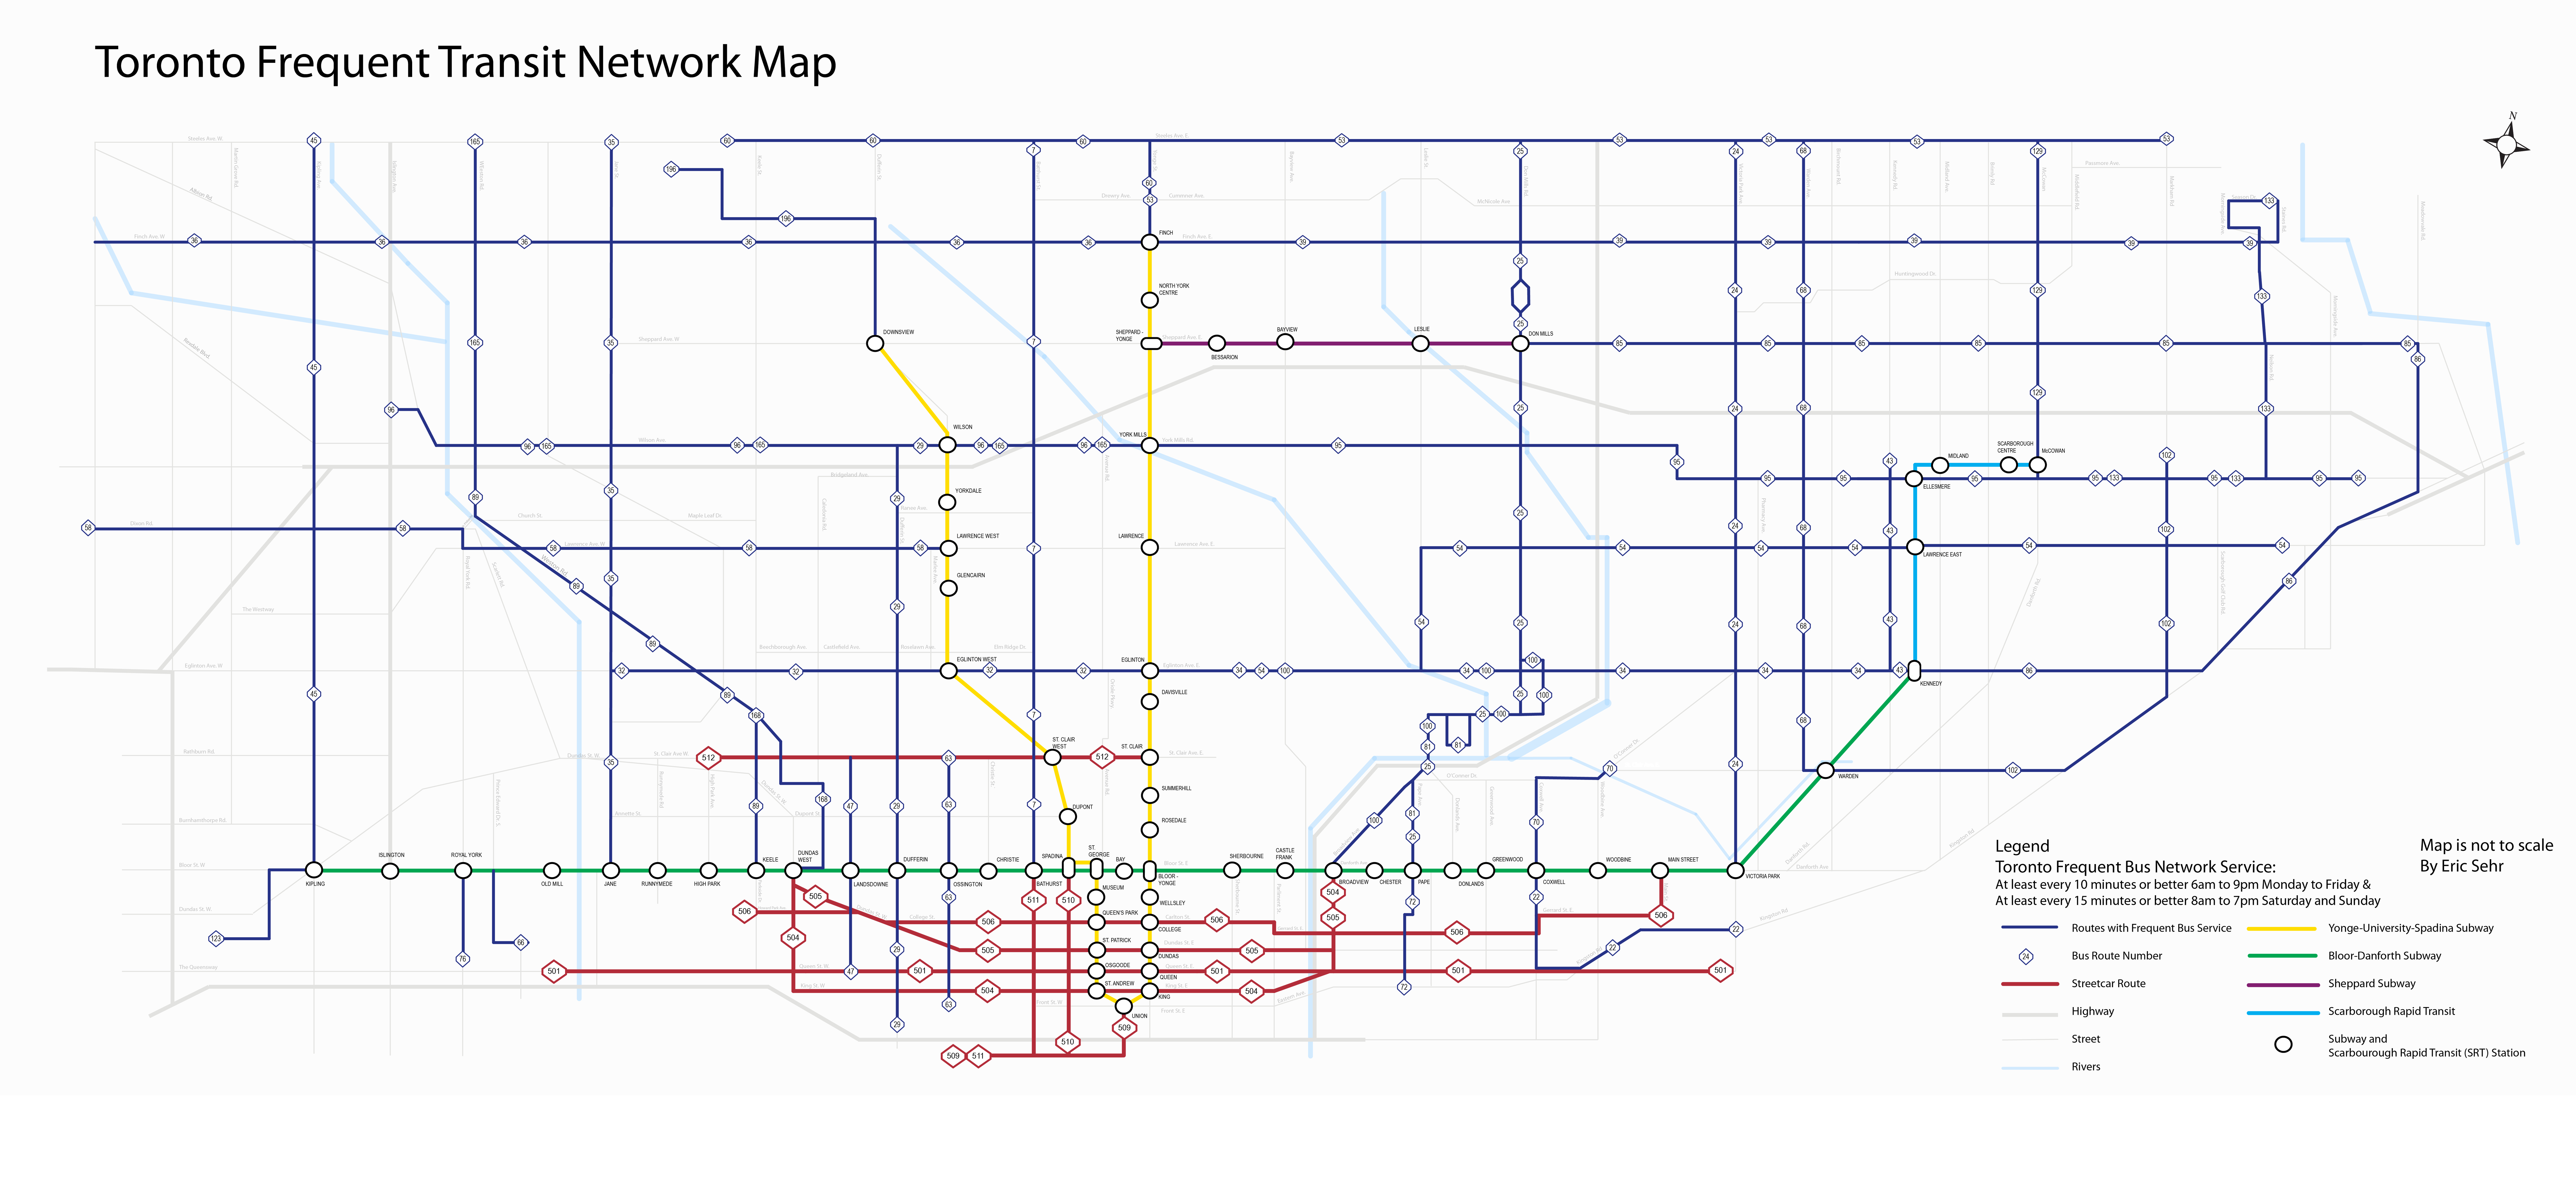 toronto a frequent network map Human Transit